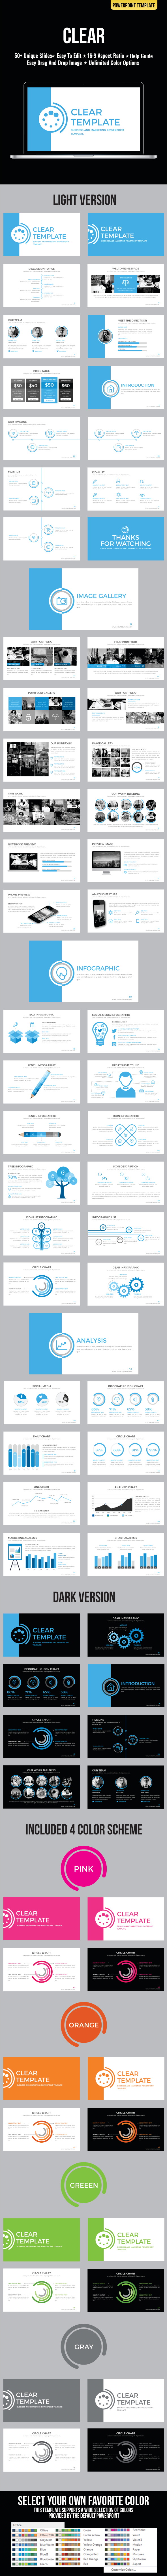 Clear Powerpoint Template